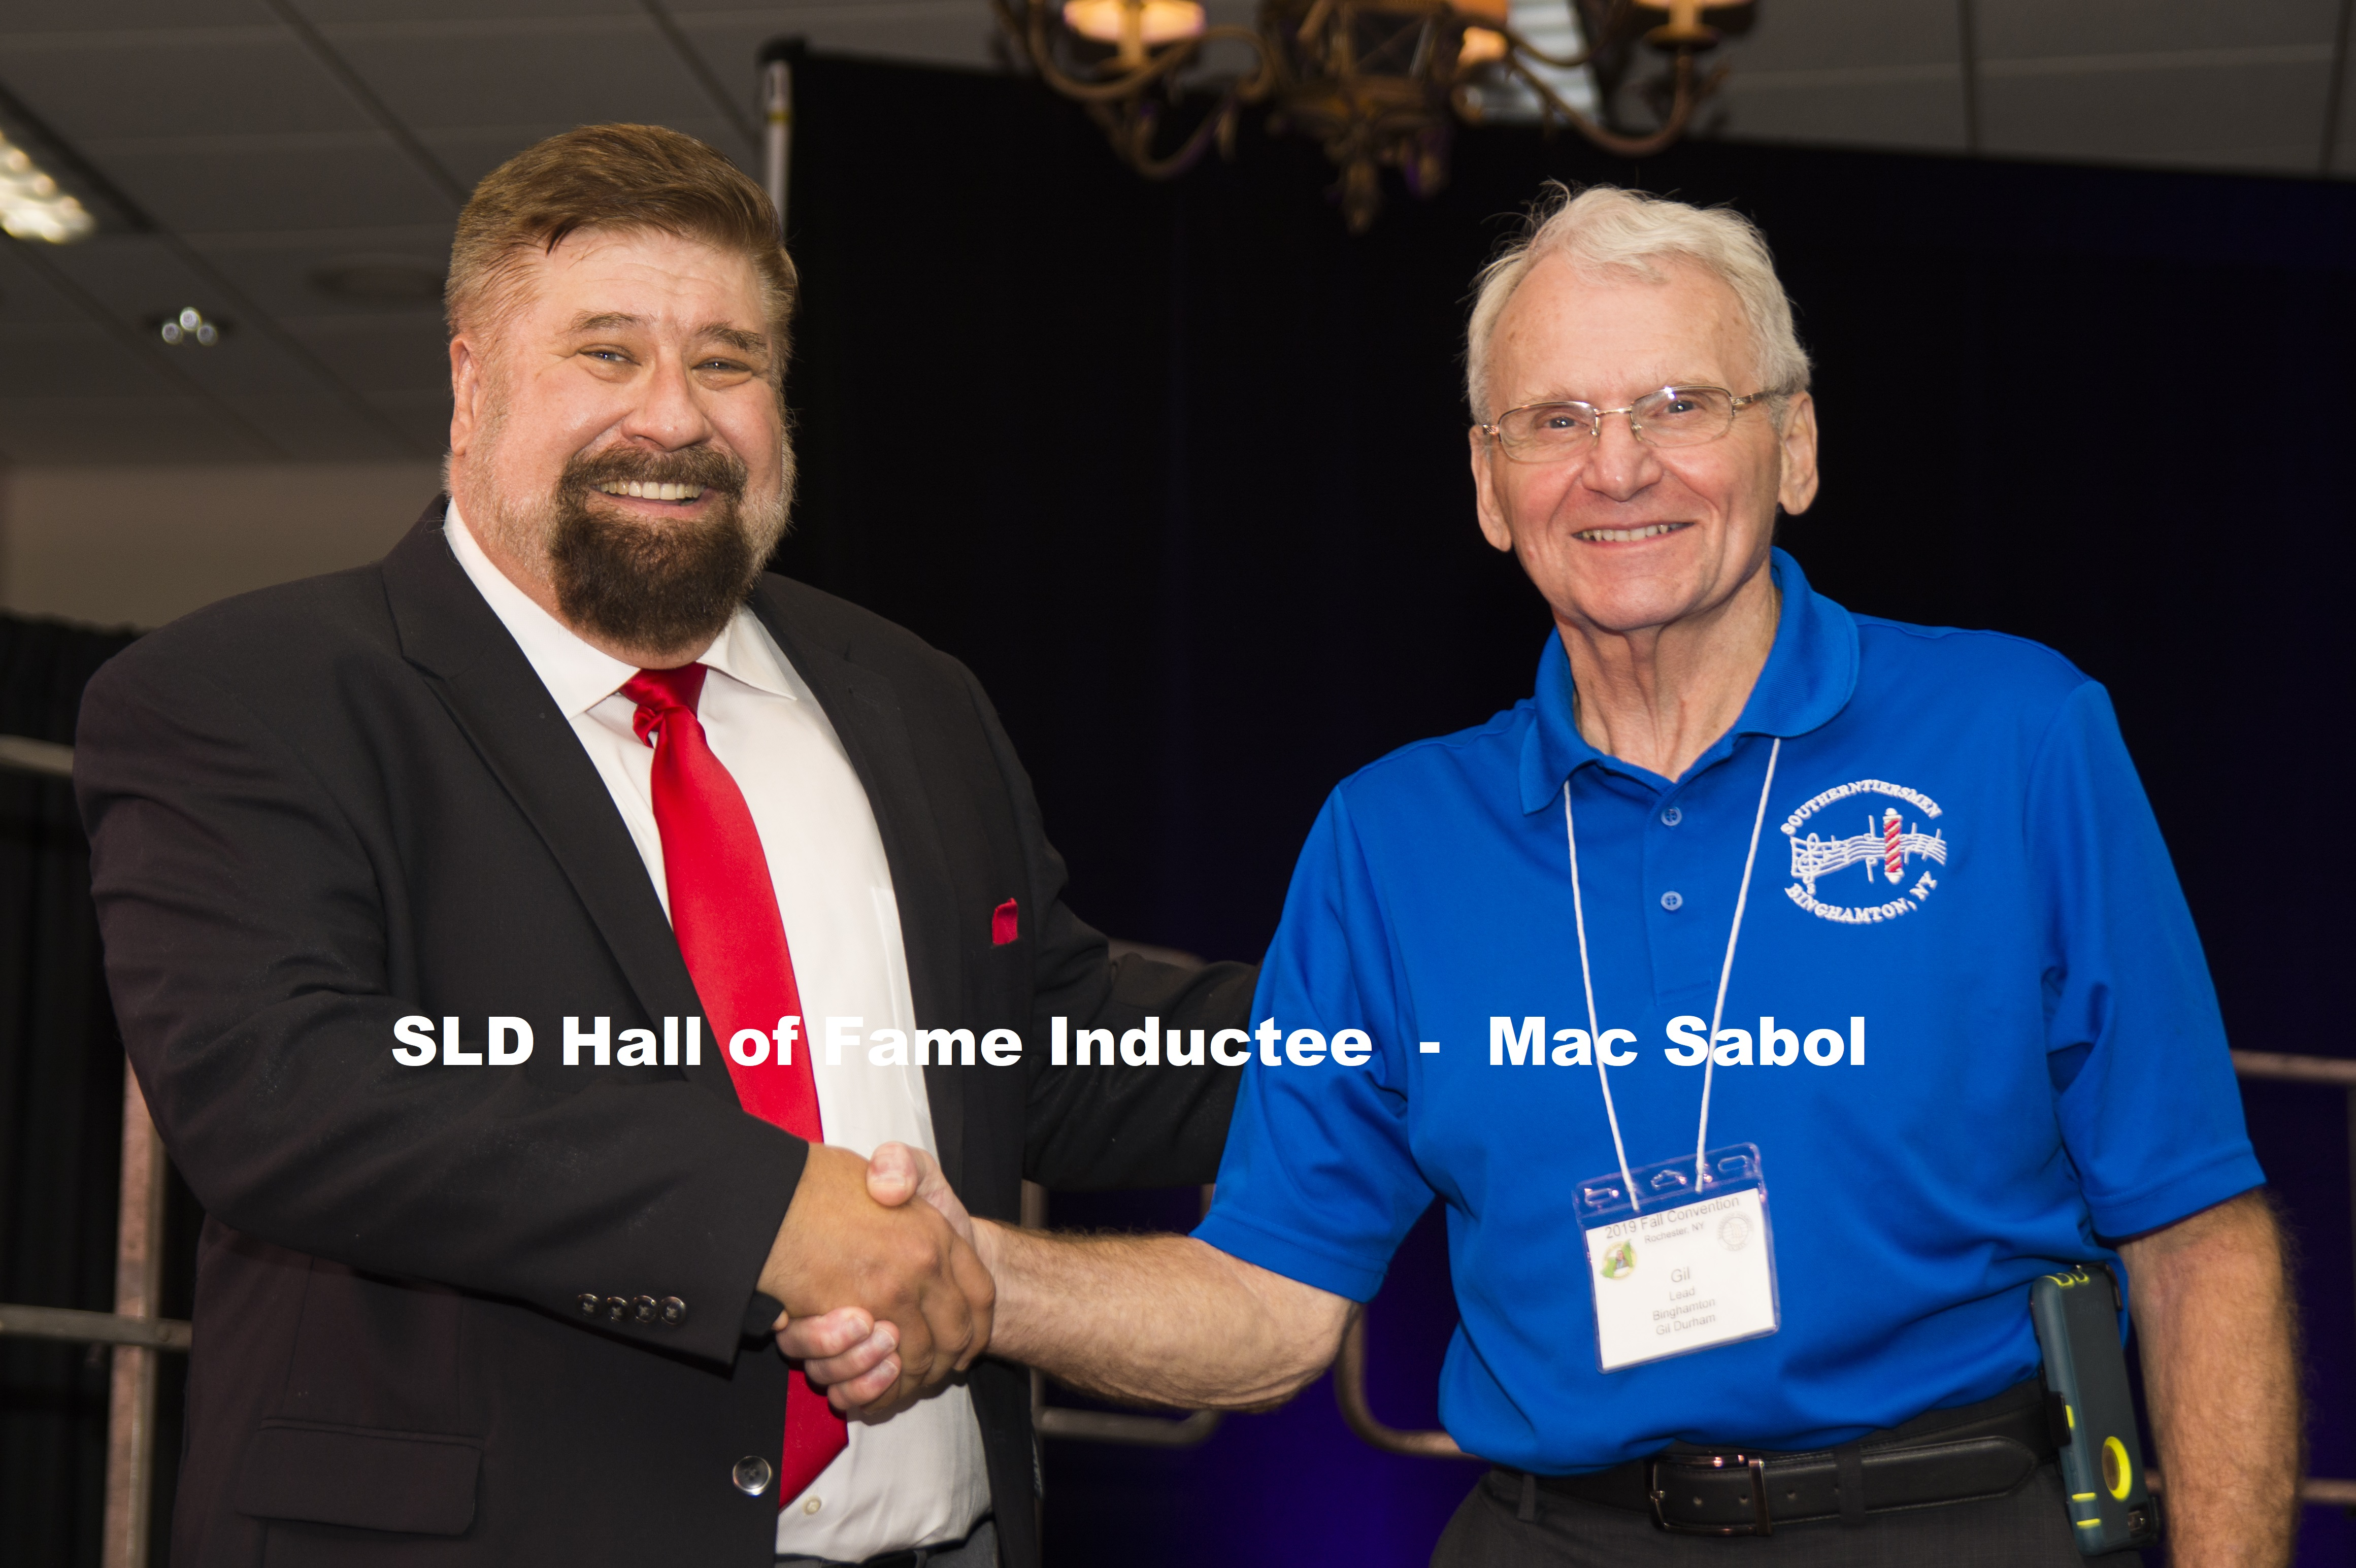 Hall of Fame Mac Sabol